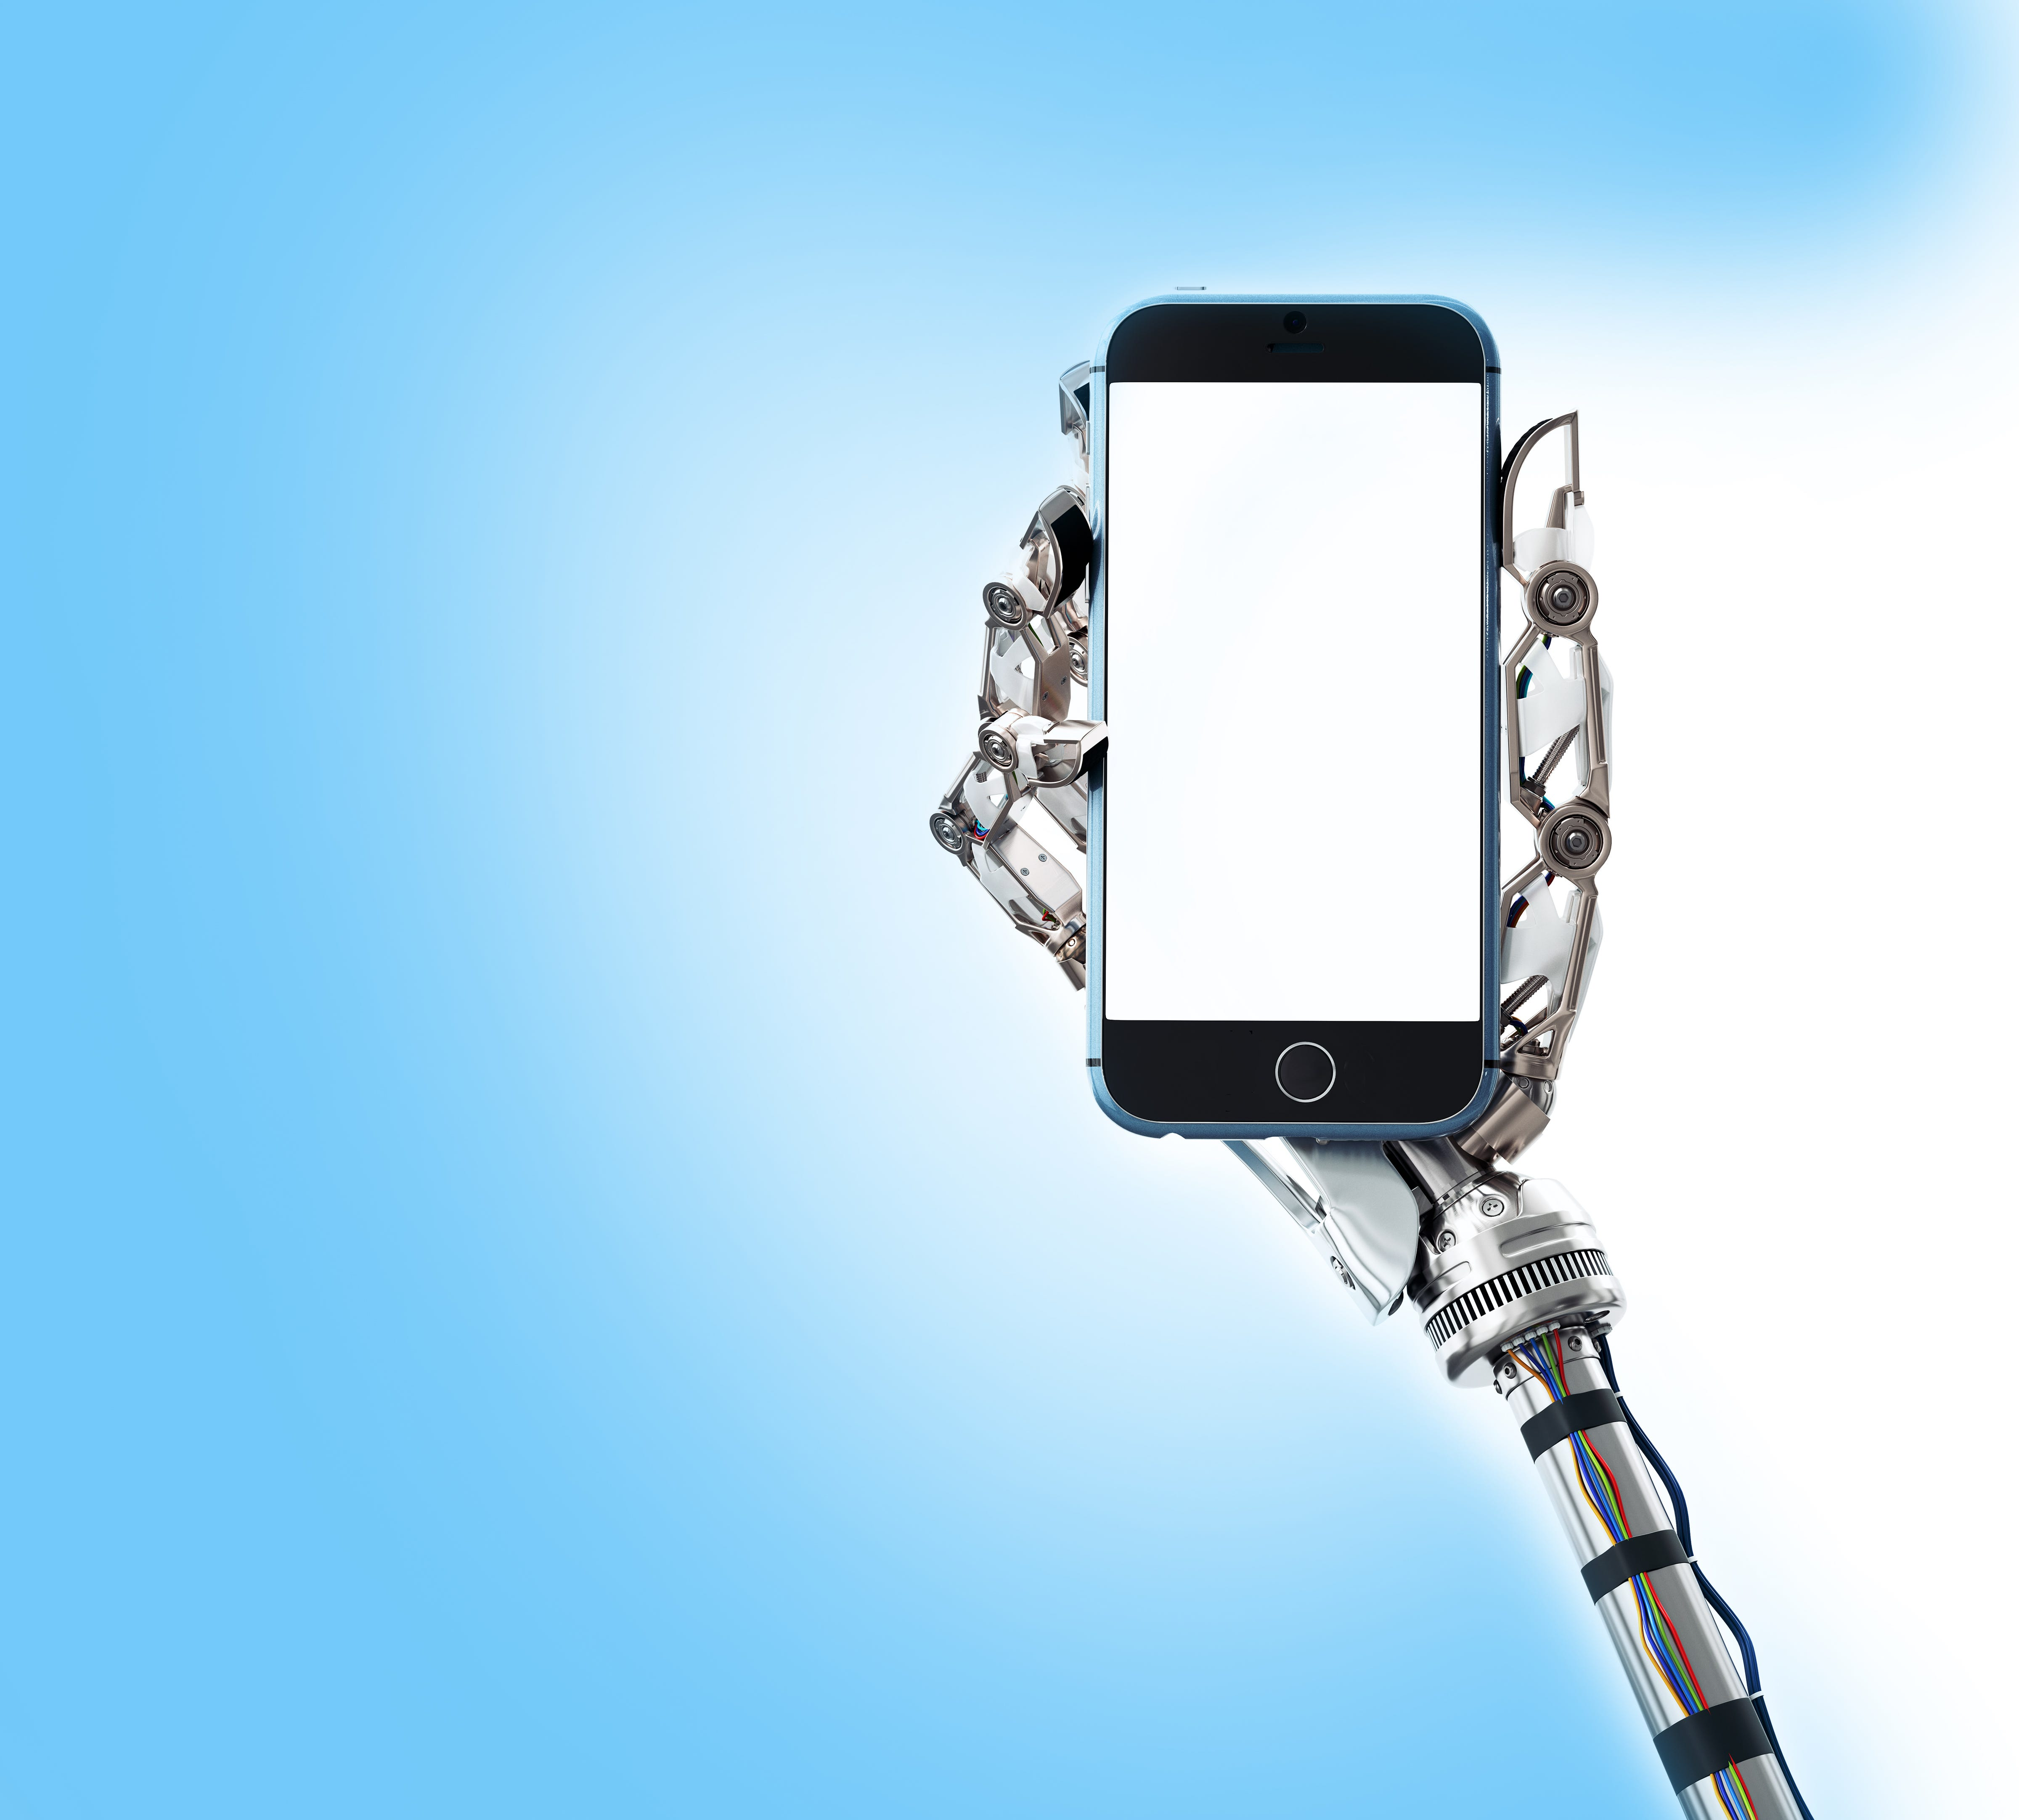 Sick of those robocalls? So are 40 of the nation's attorneys general | Clarion Ledger